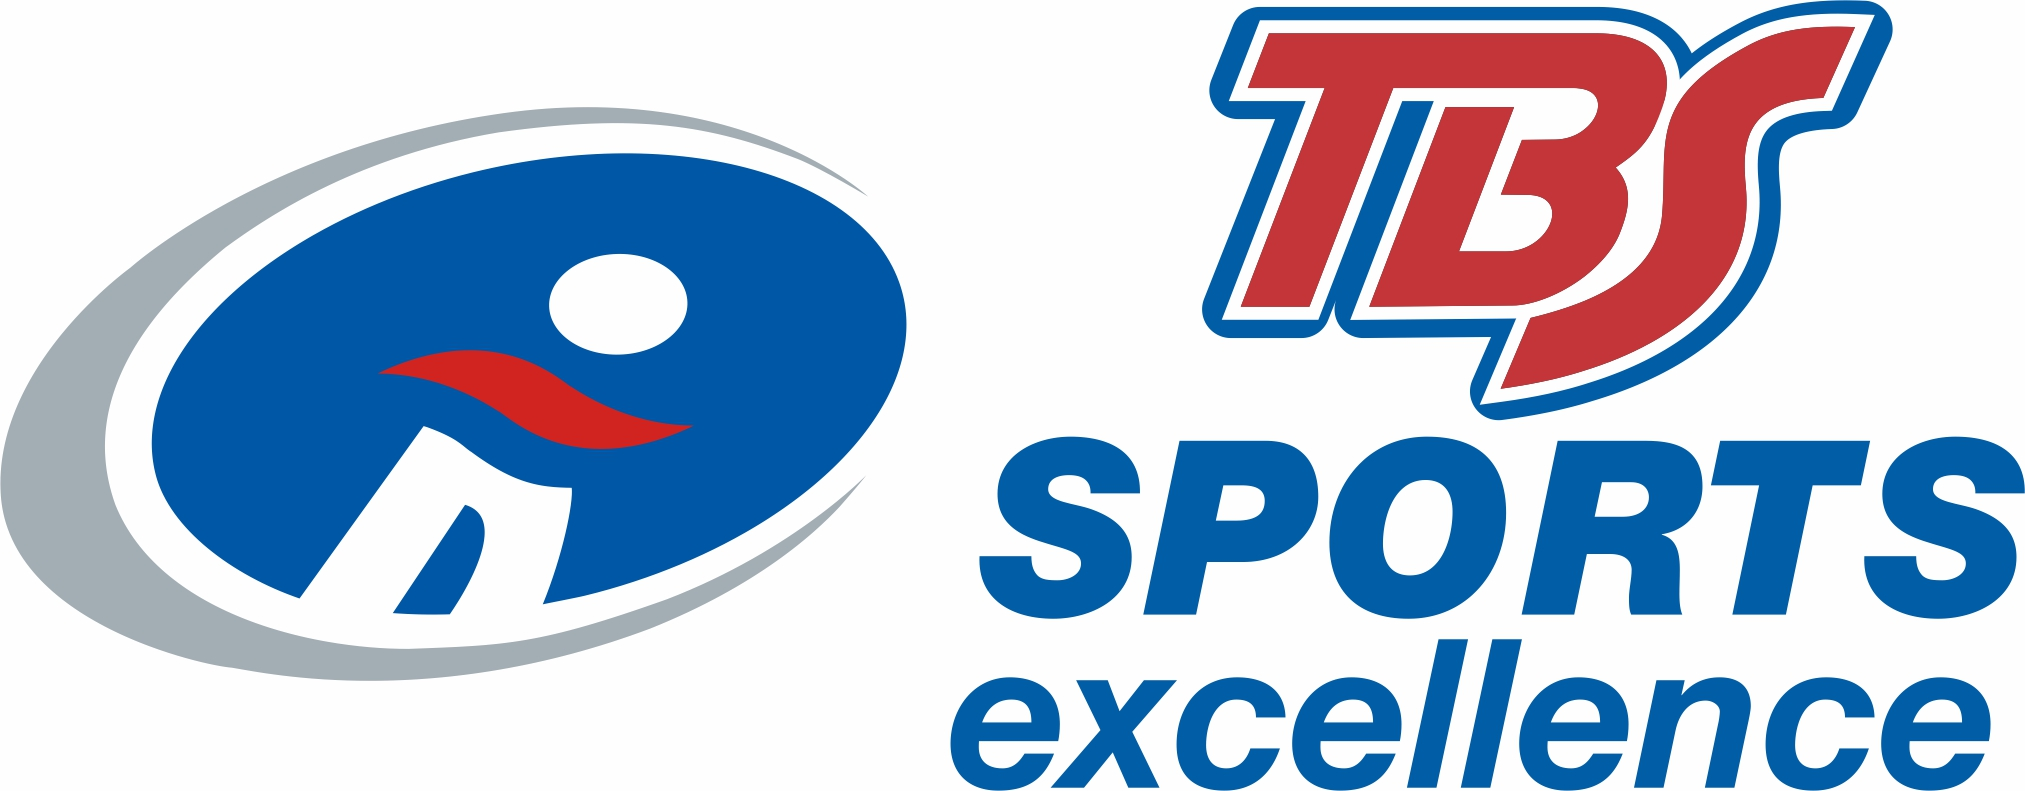 TBS SPORTS EXCELLENCE